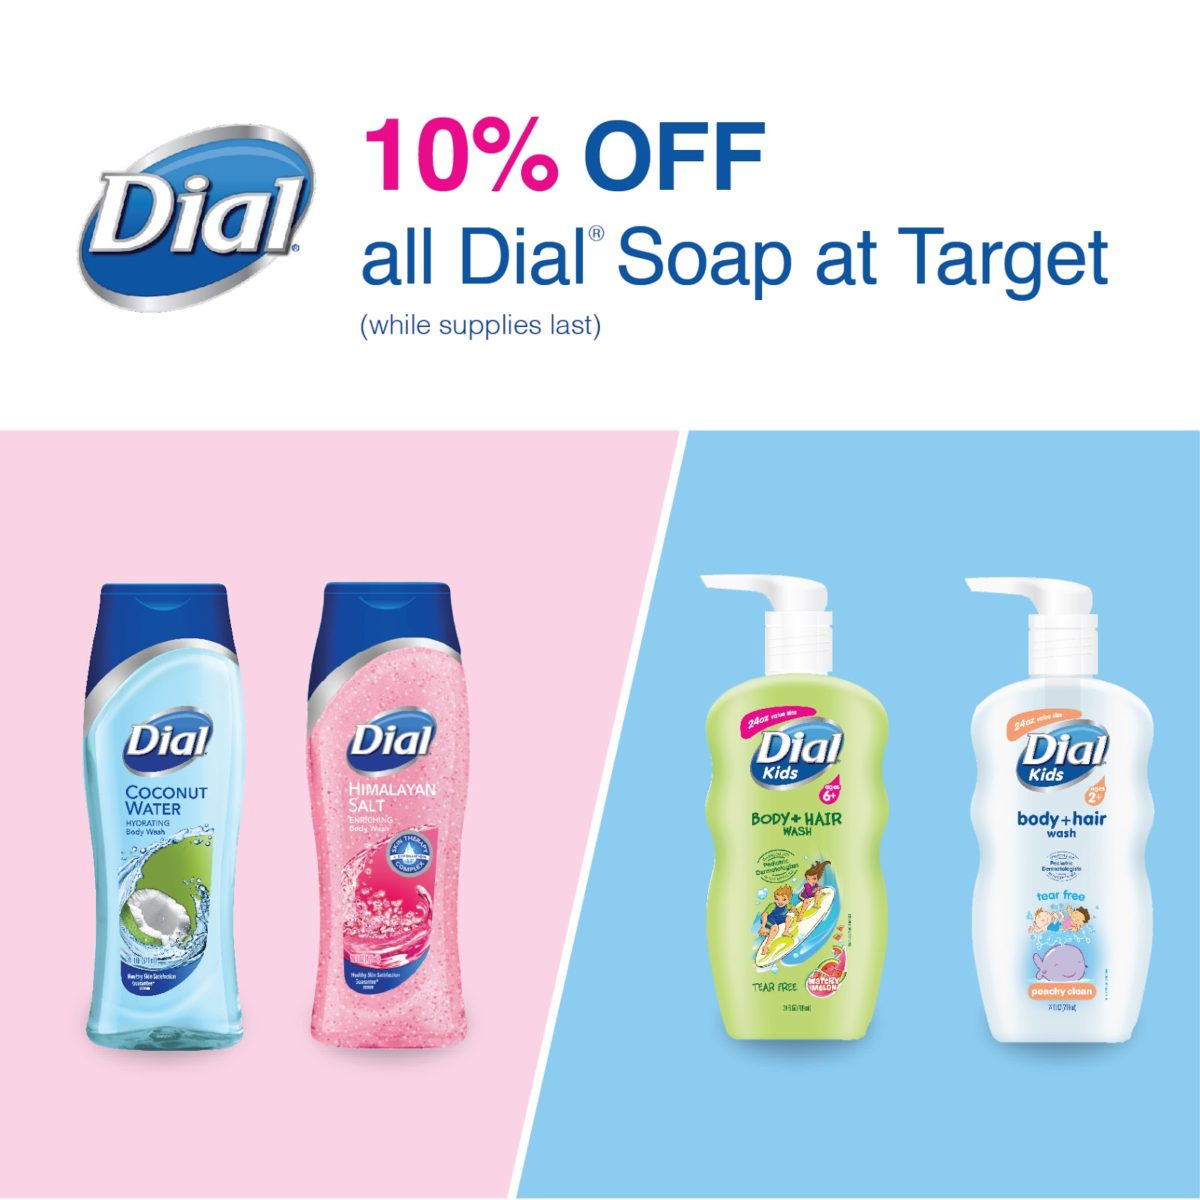 Score 10% Off All Dial Soap At Target!